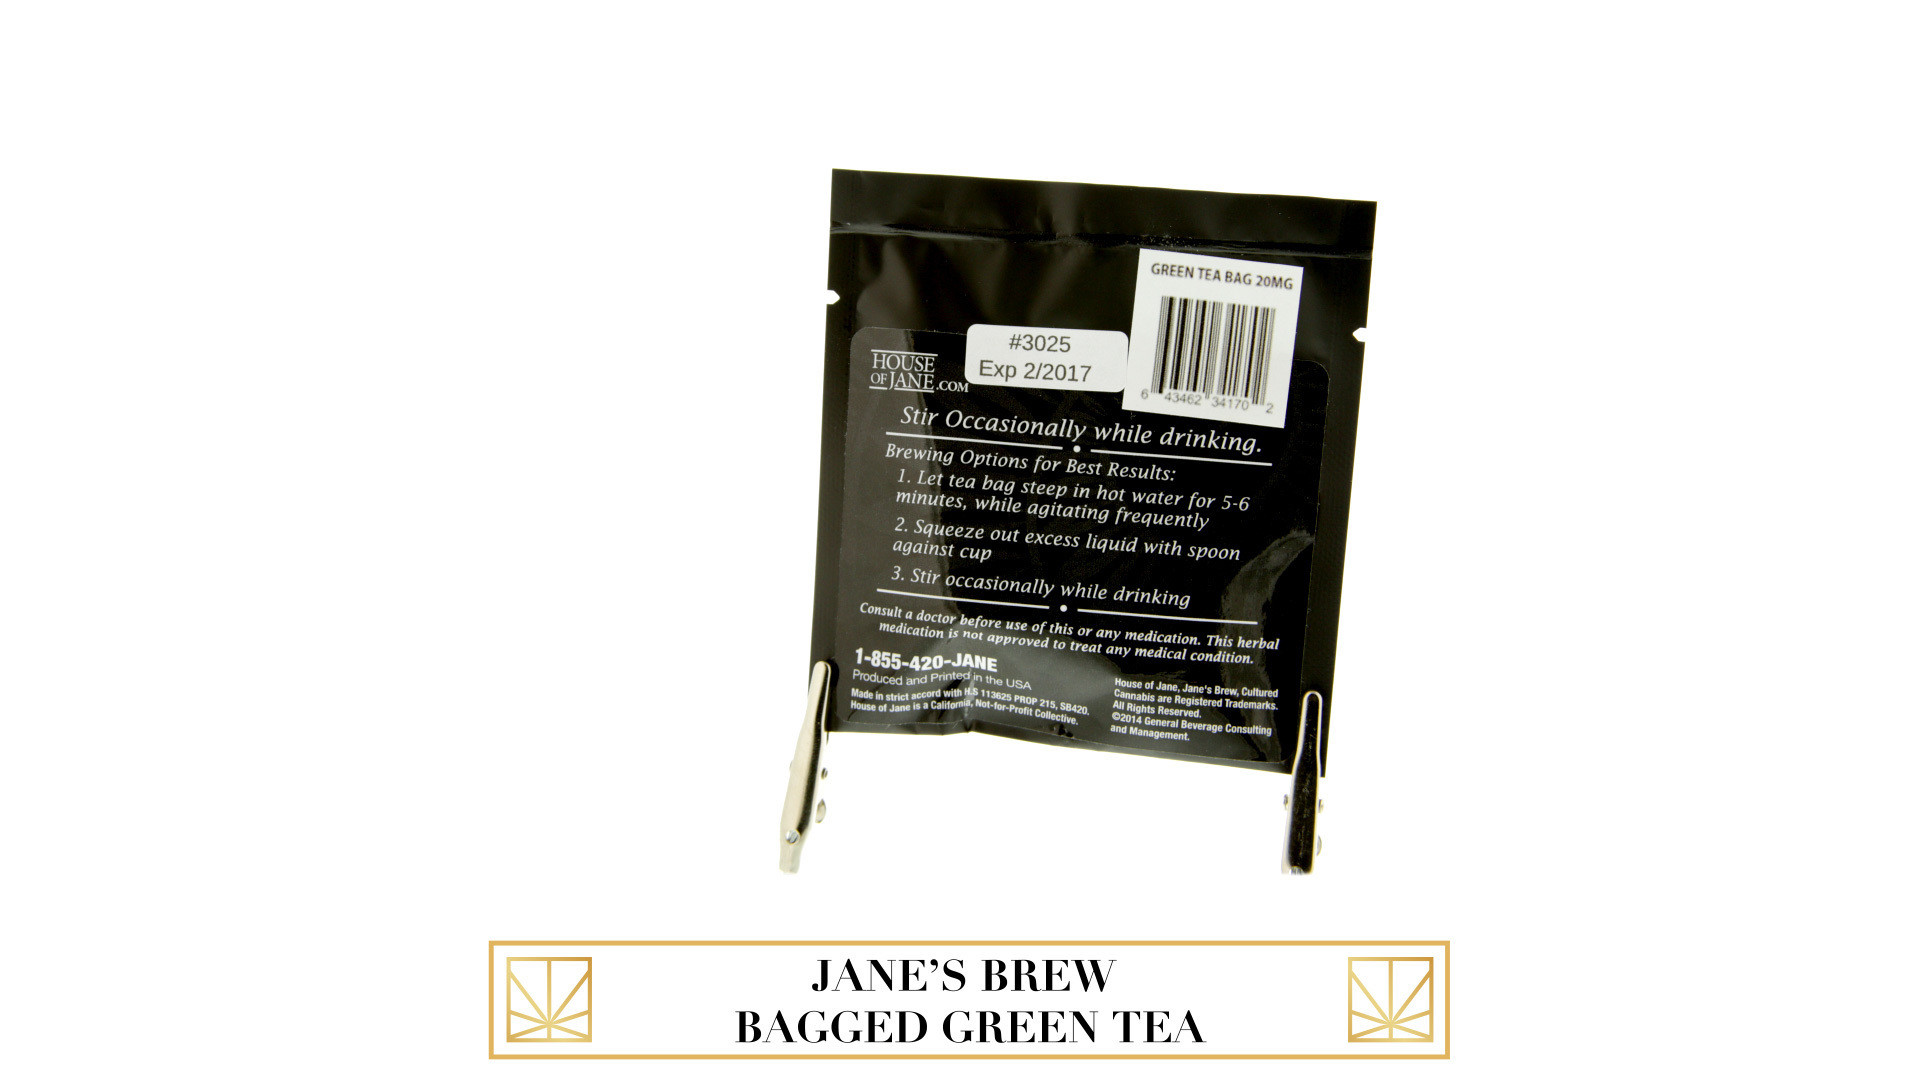 Jane's Brew Bagged Green Tea